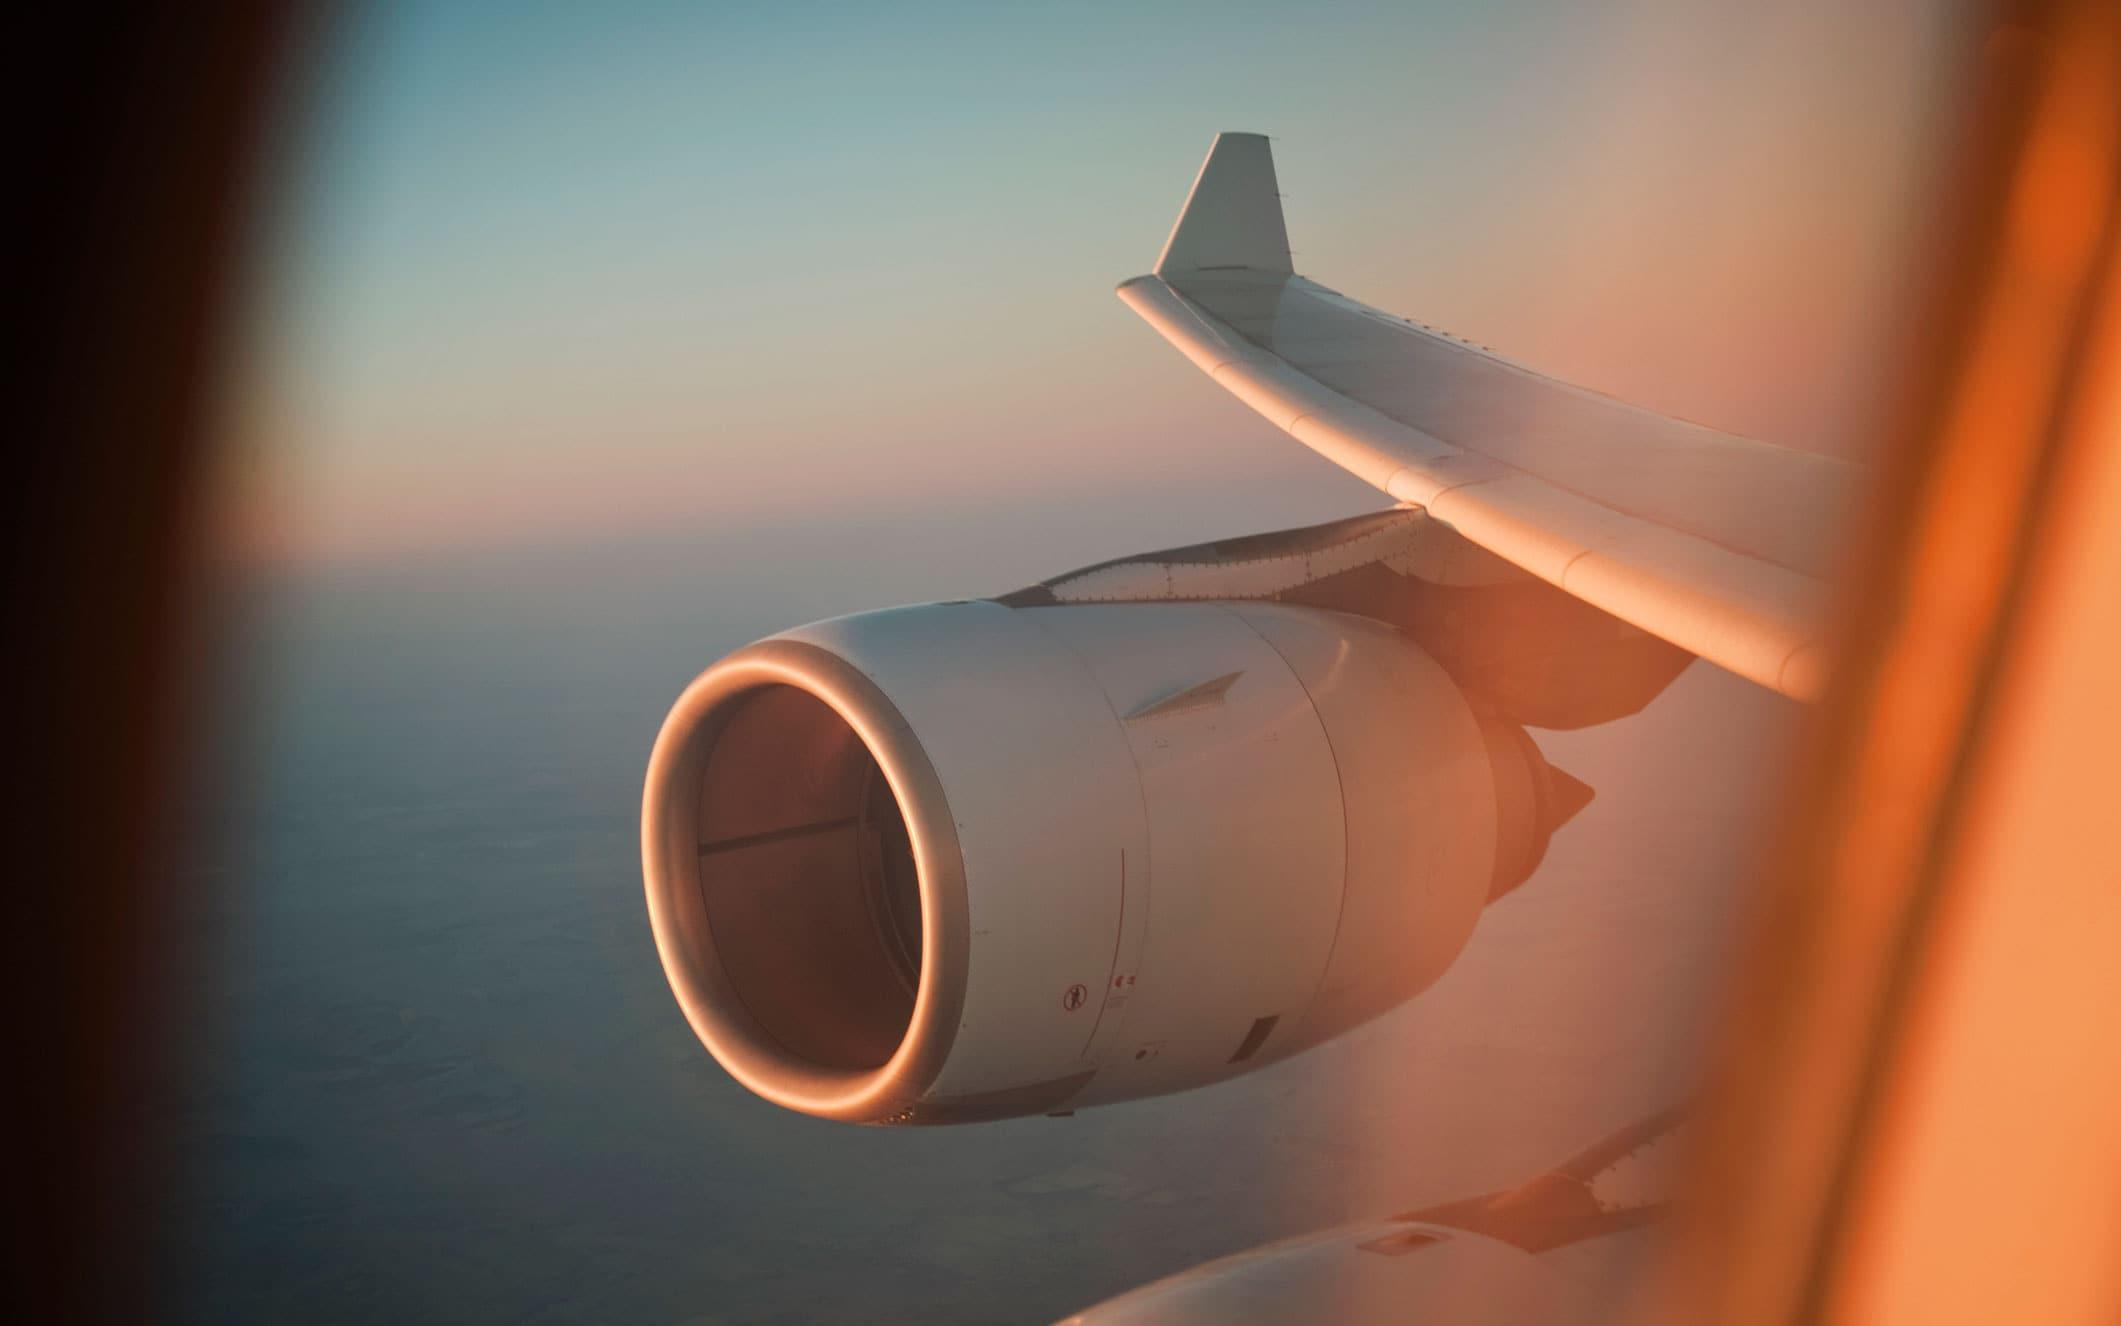 How far can a plane fly if both its engines fail?